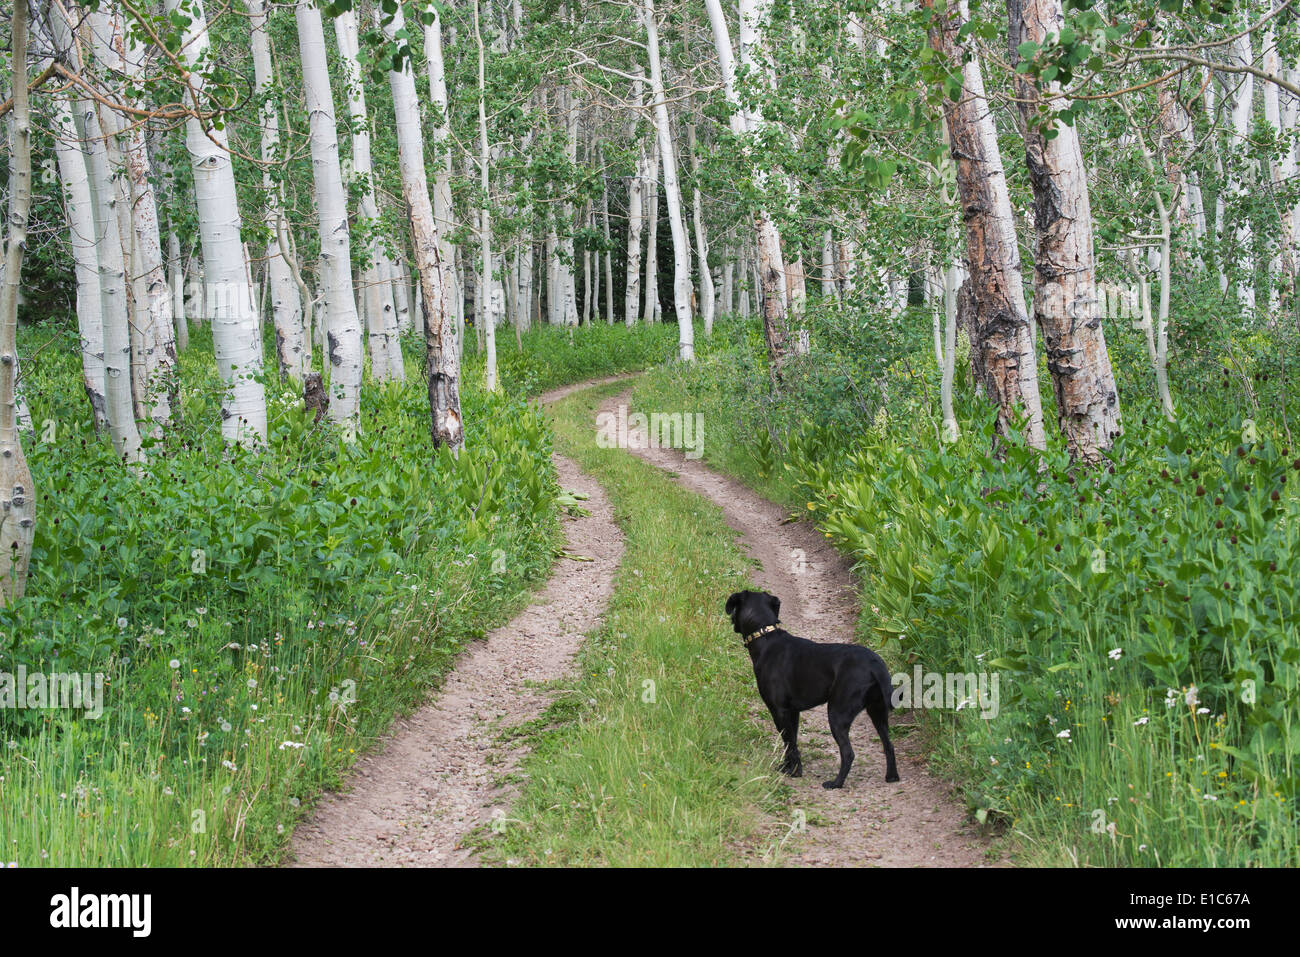 A black labrador dog standing on a deserted path through aspen woods. - Stock Image